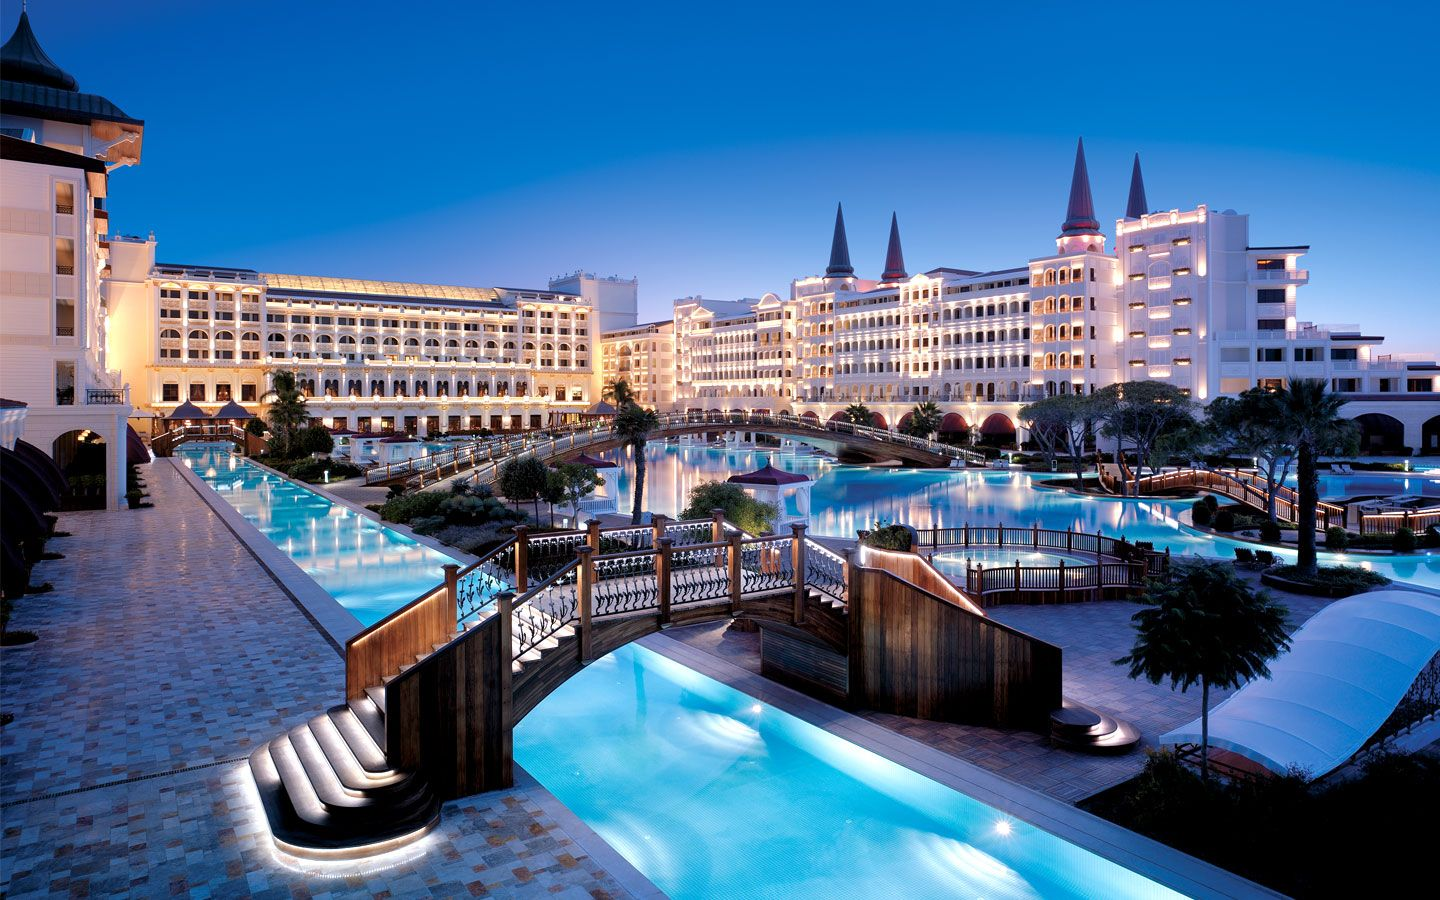 Luxury hotels mardan palace most luxury hotel in turkey world visits